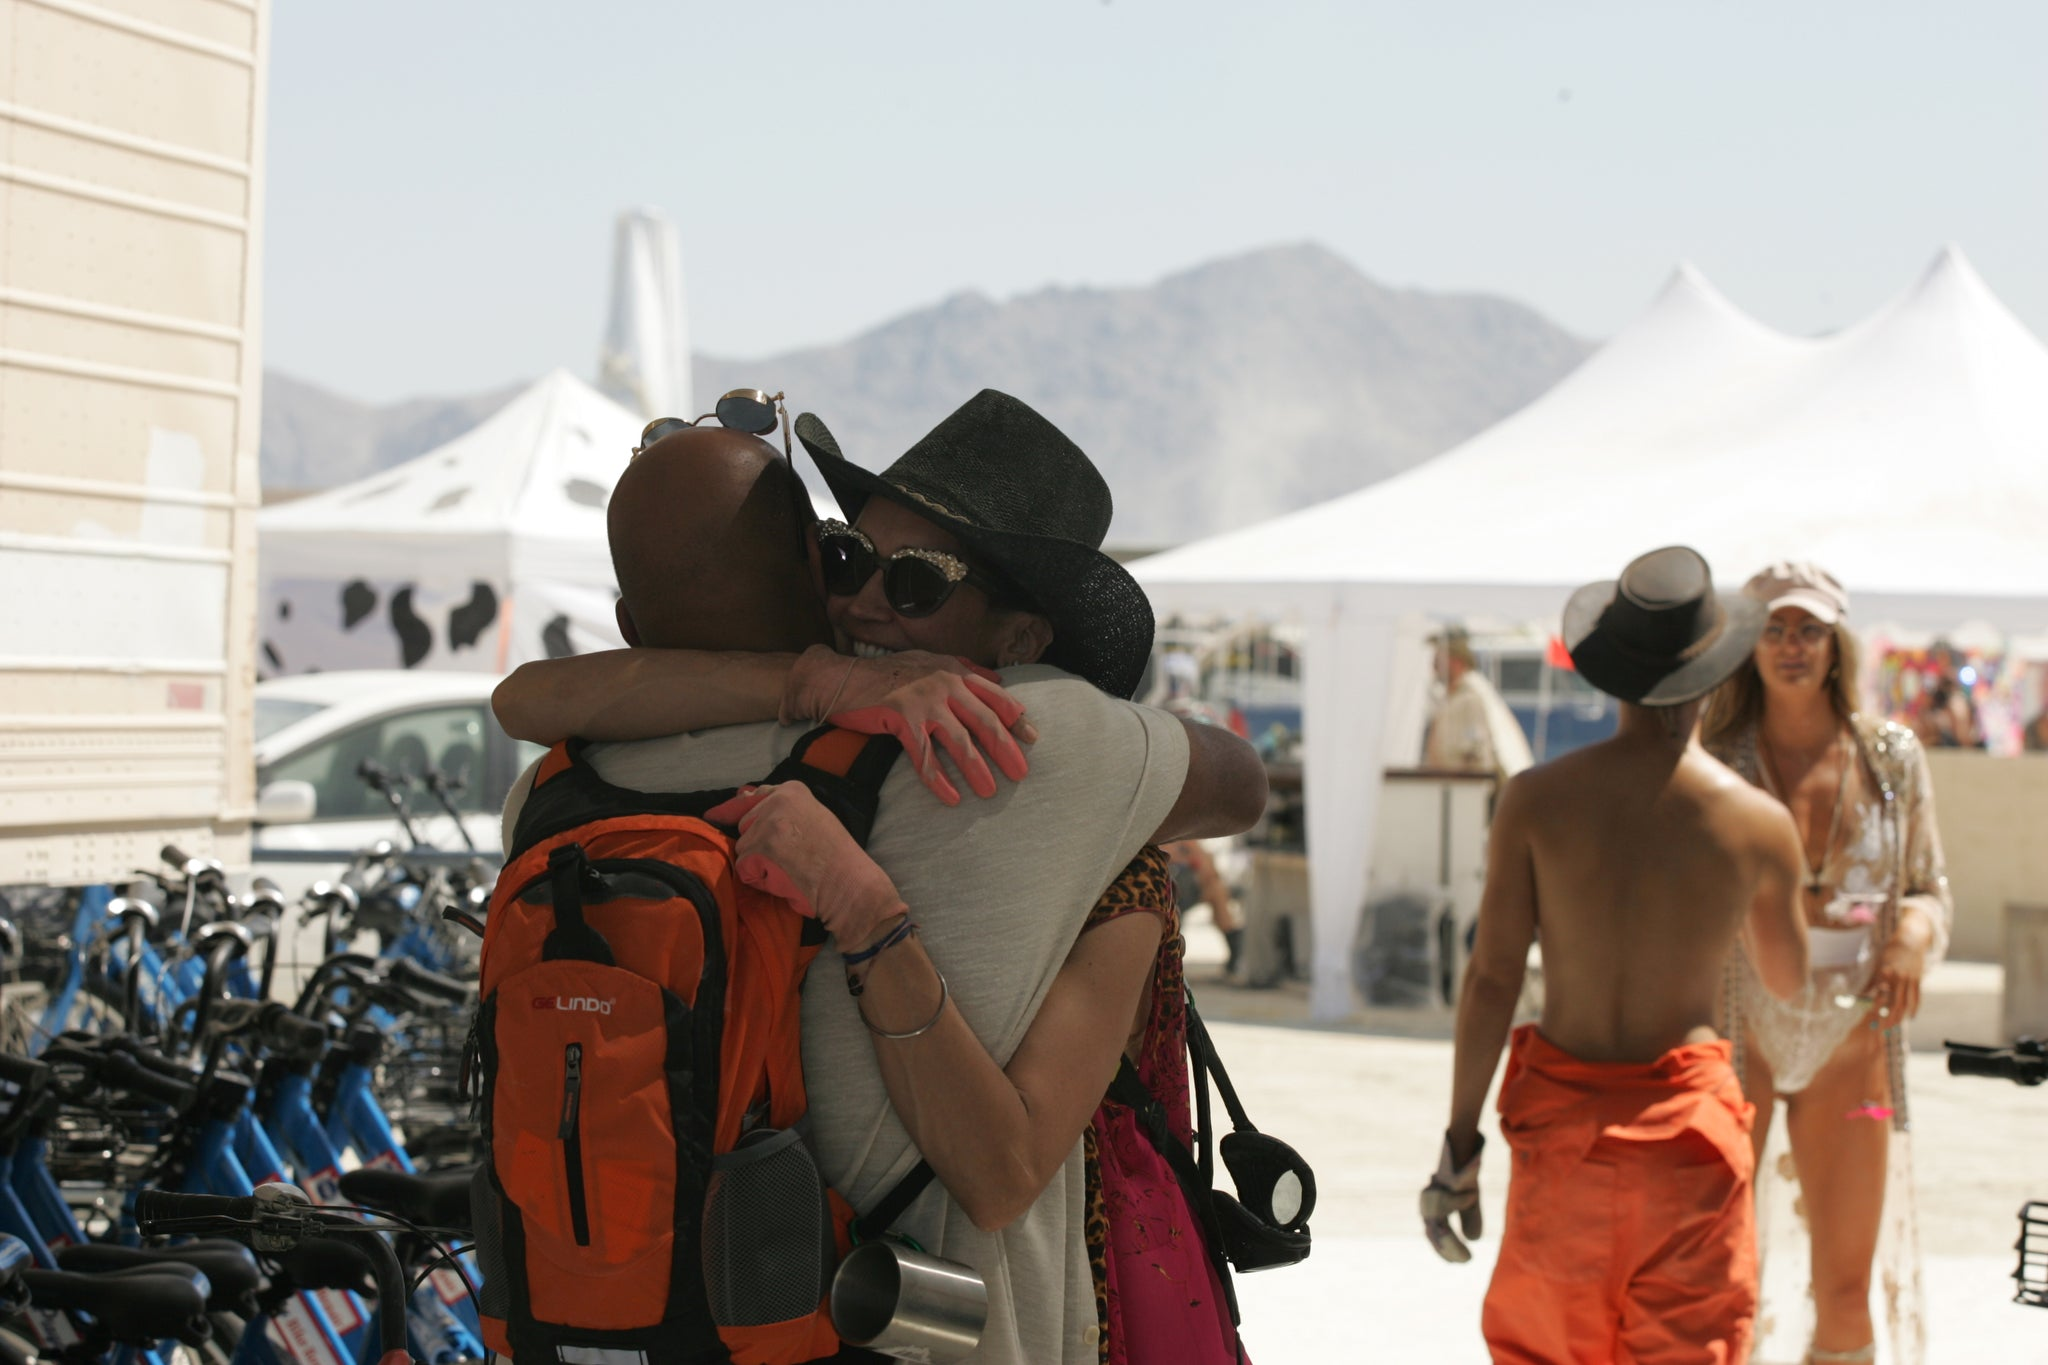 The Best of Burning Man